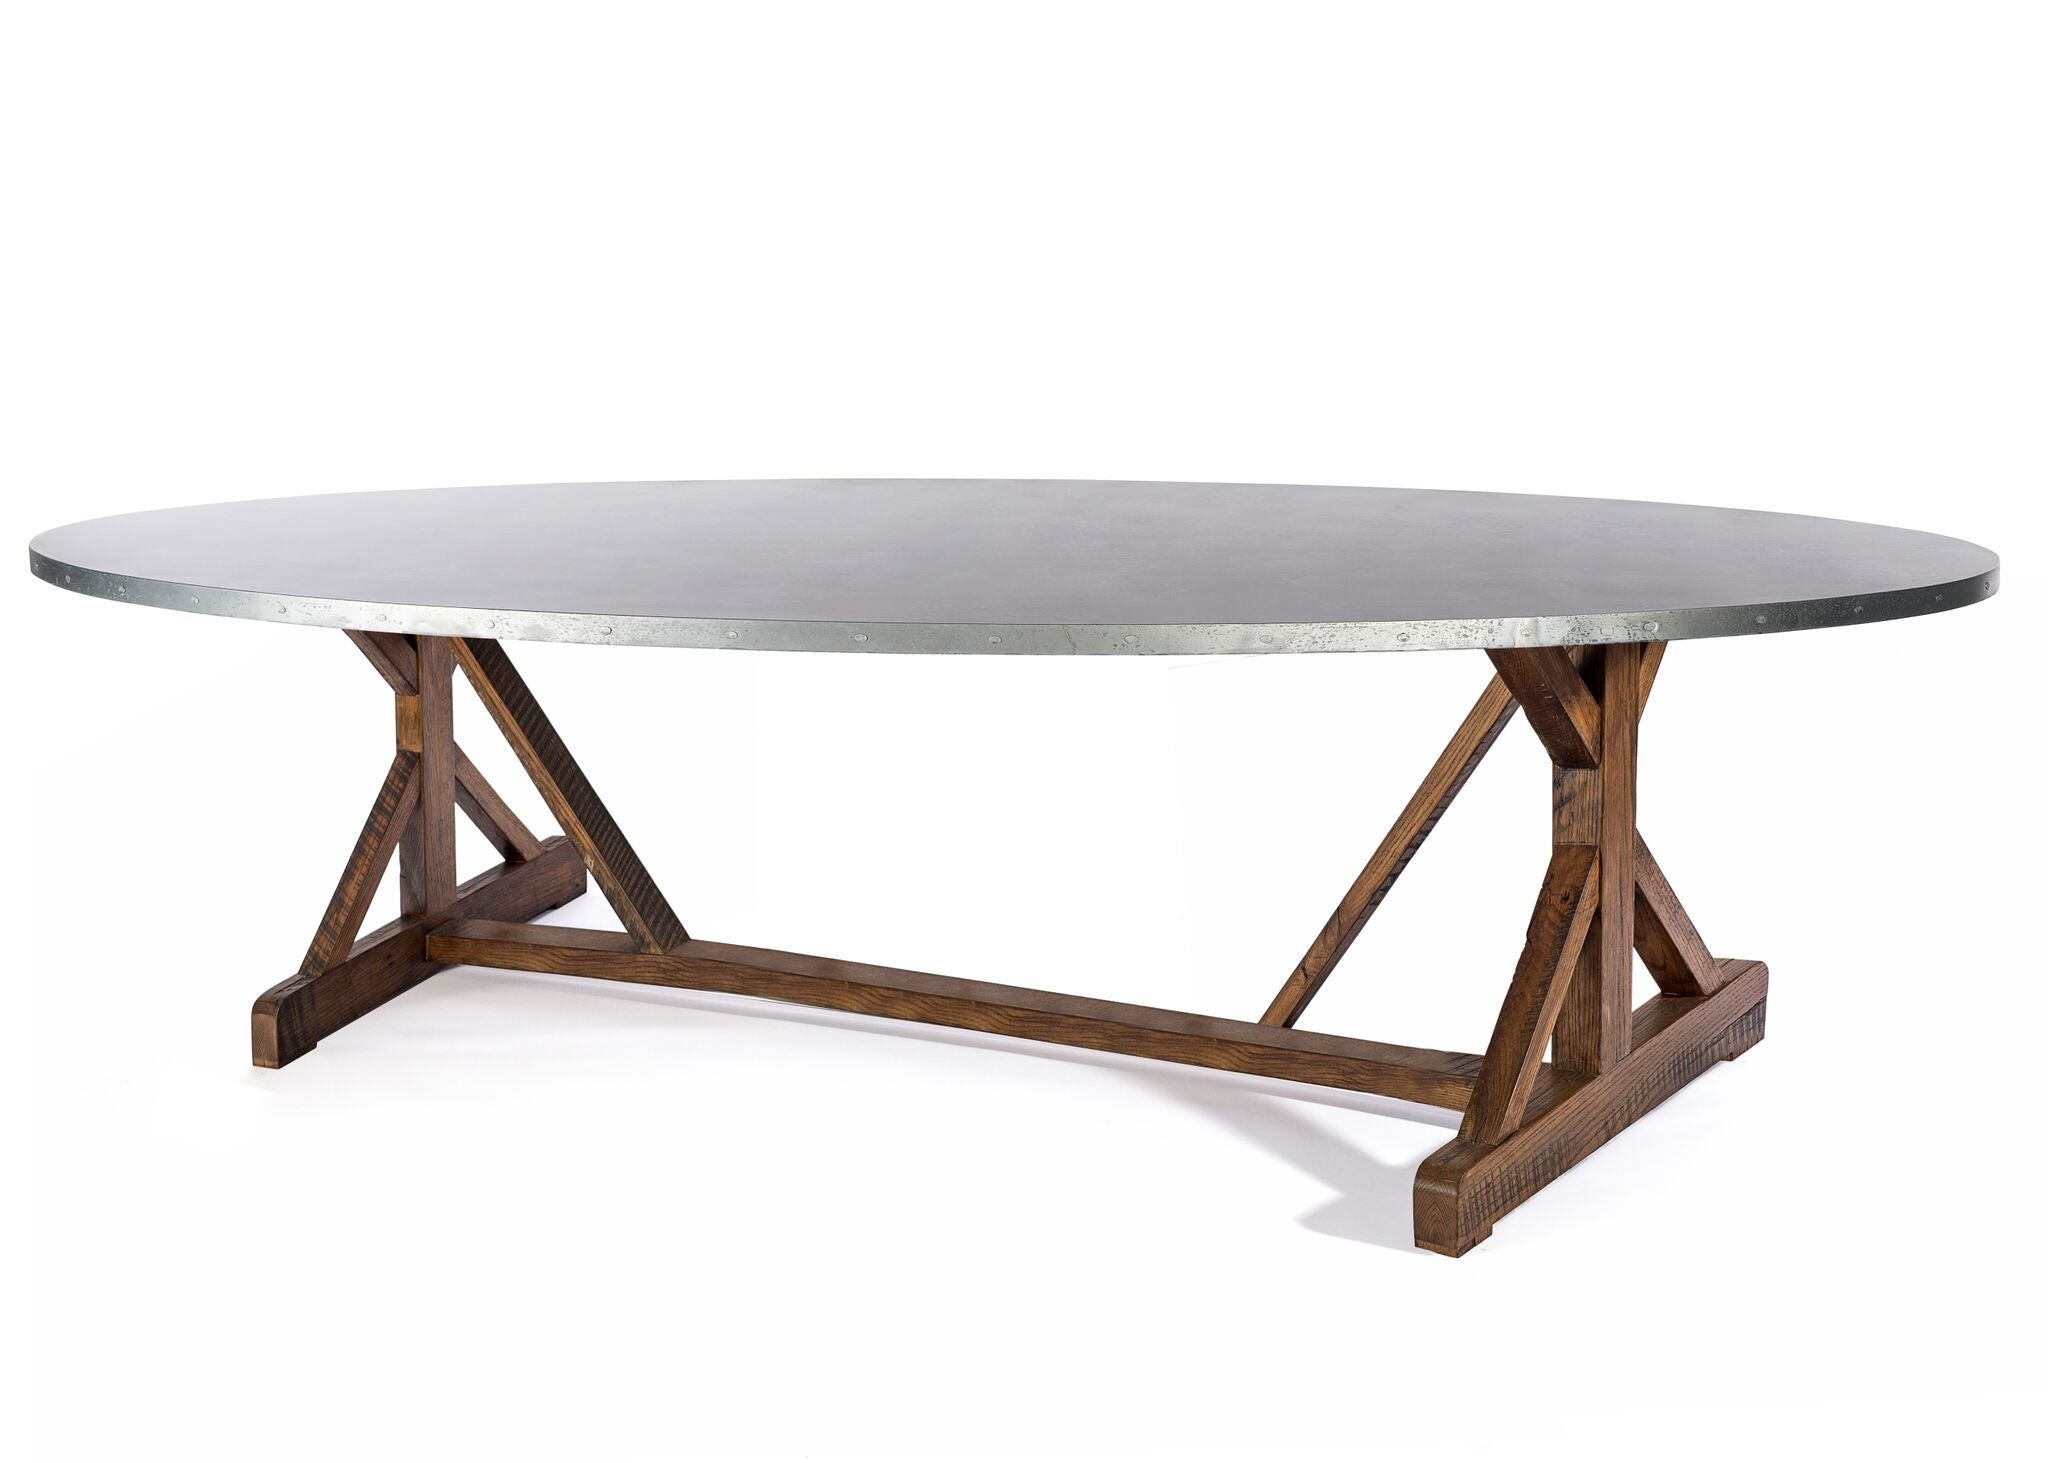 "Zinc Oval Tables | French Trestle Table | CLASSIC | White Wash on Reclaimed Oak | CUSTOM SIZE L 60 W 37 H 30 | 1.5"" Standard 